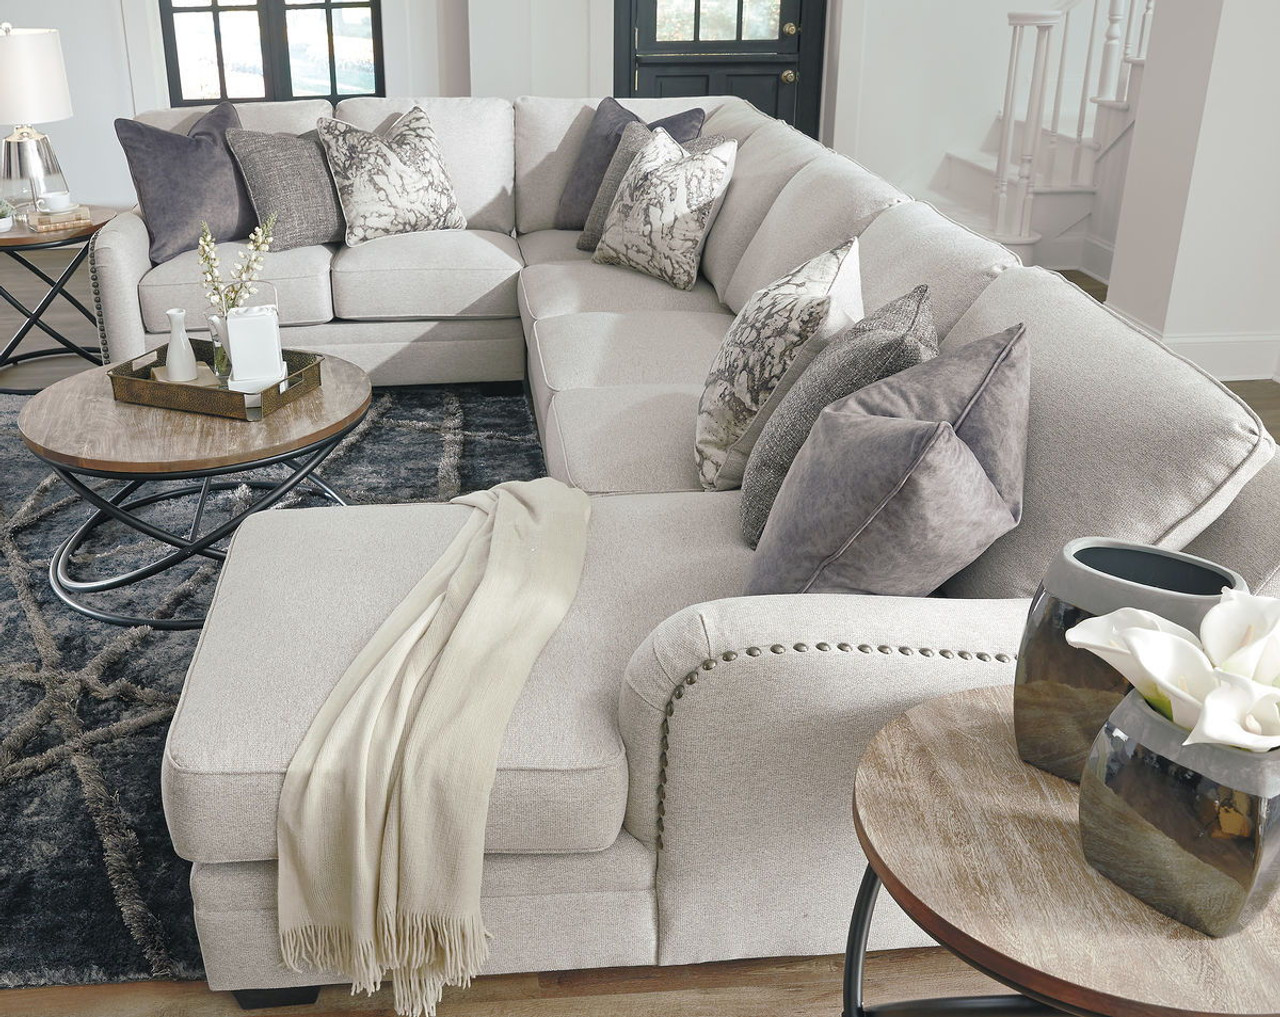 The Dellara Chalk Laf Loveseat Wedge Armless Loveseat Raf Corner Chaise Sectional Available At Dayton Discount Furniture Serving Vandalia Kettering And Springfield Ohio